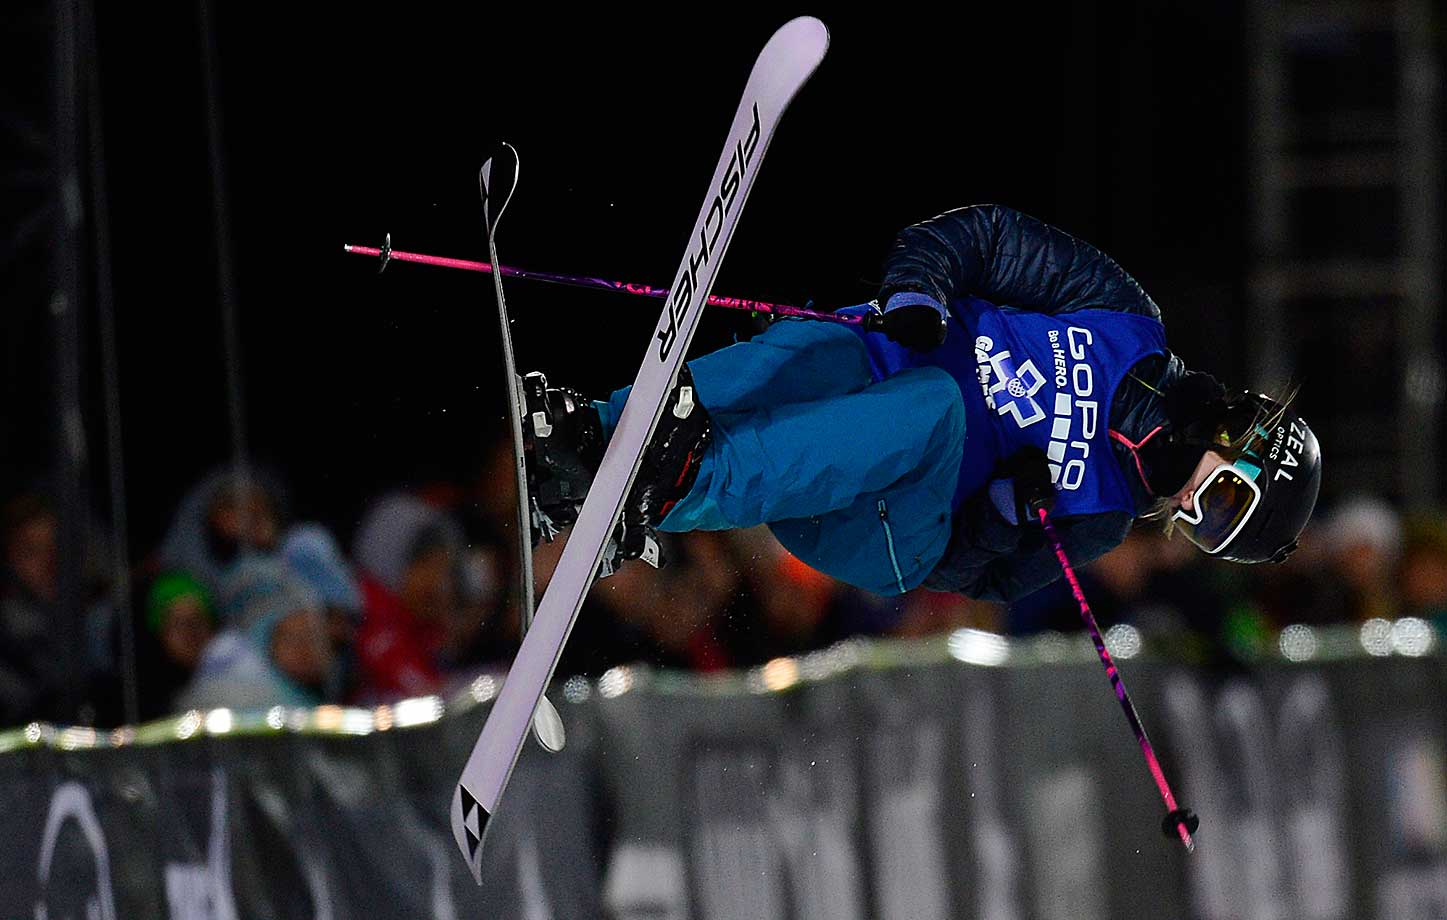 Annalisa Drew rotates in the air in her first run during the finals of women's ski half pipe at Winter X Games 2016. Maddie Bowman won her fourth consecutive gold medal with a score of 85.33.